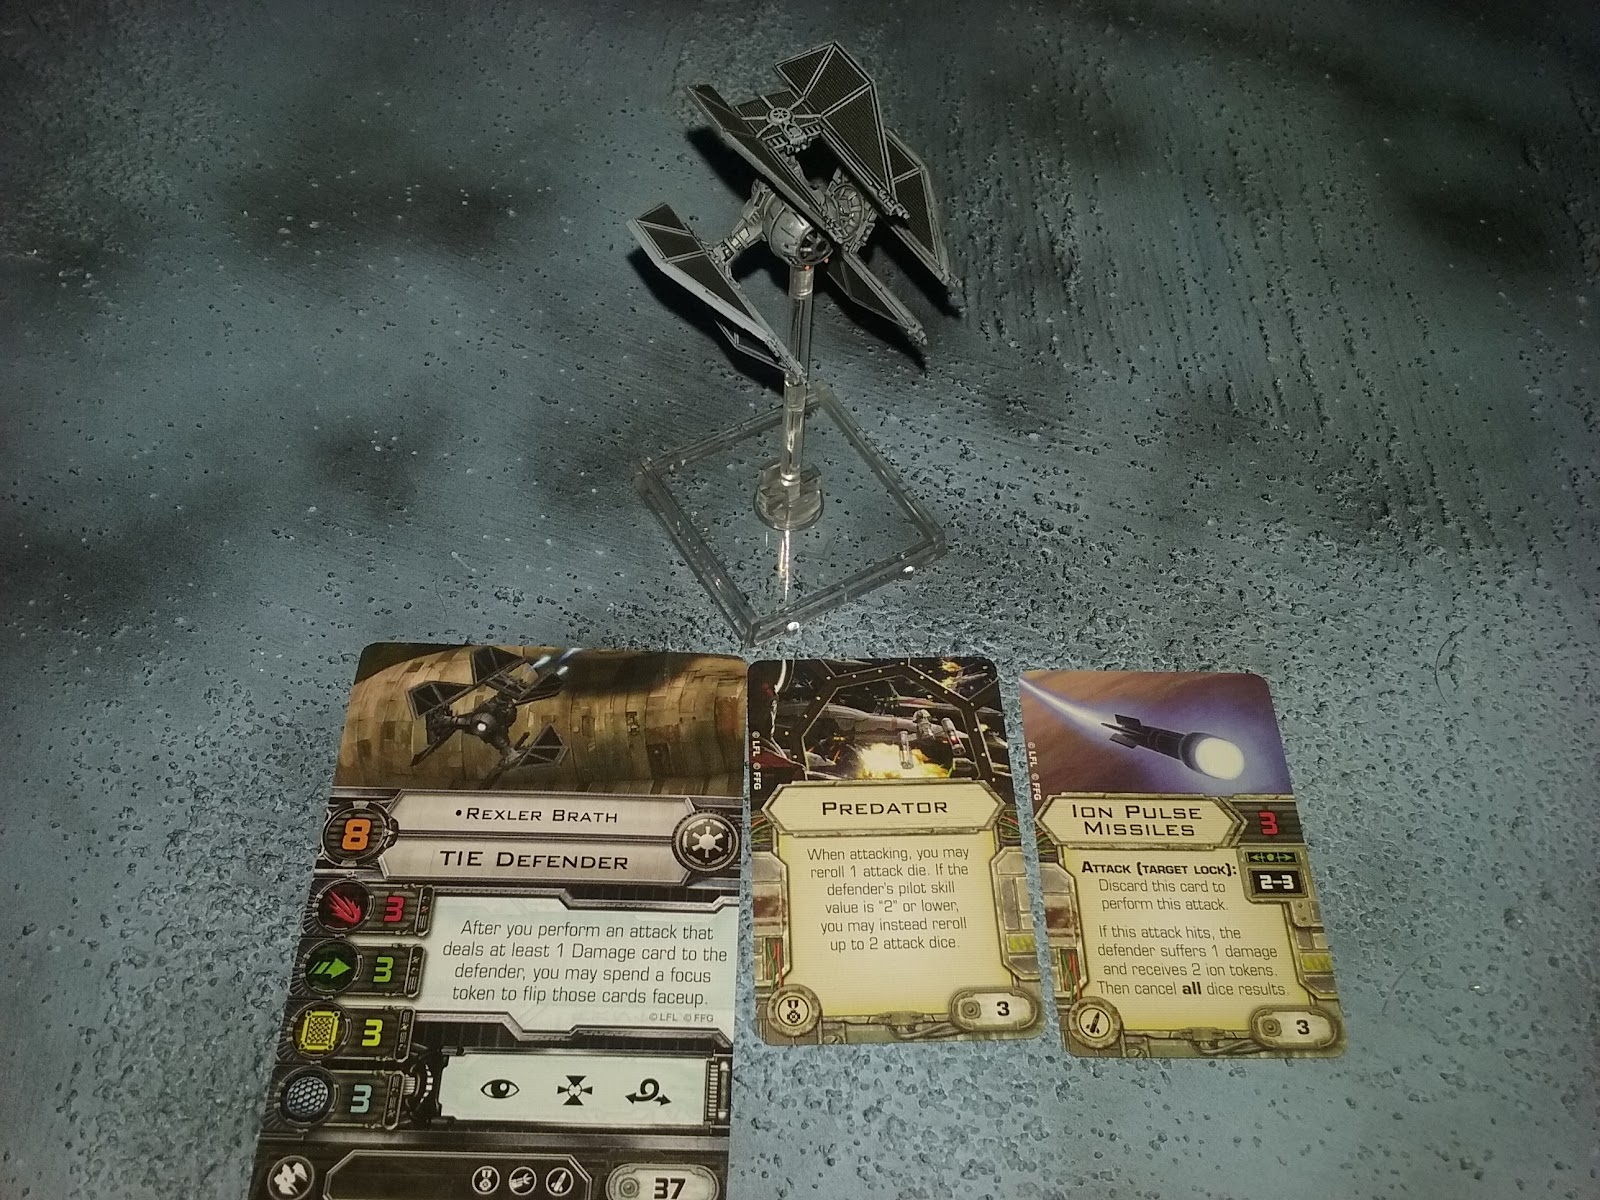 Star Wars TIE Defender Ship build for X-Wing miniatures game